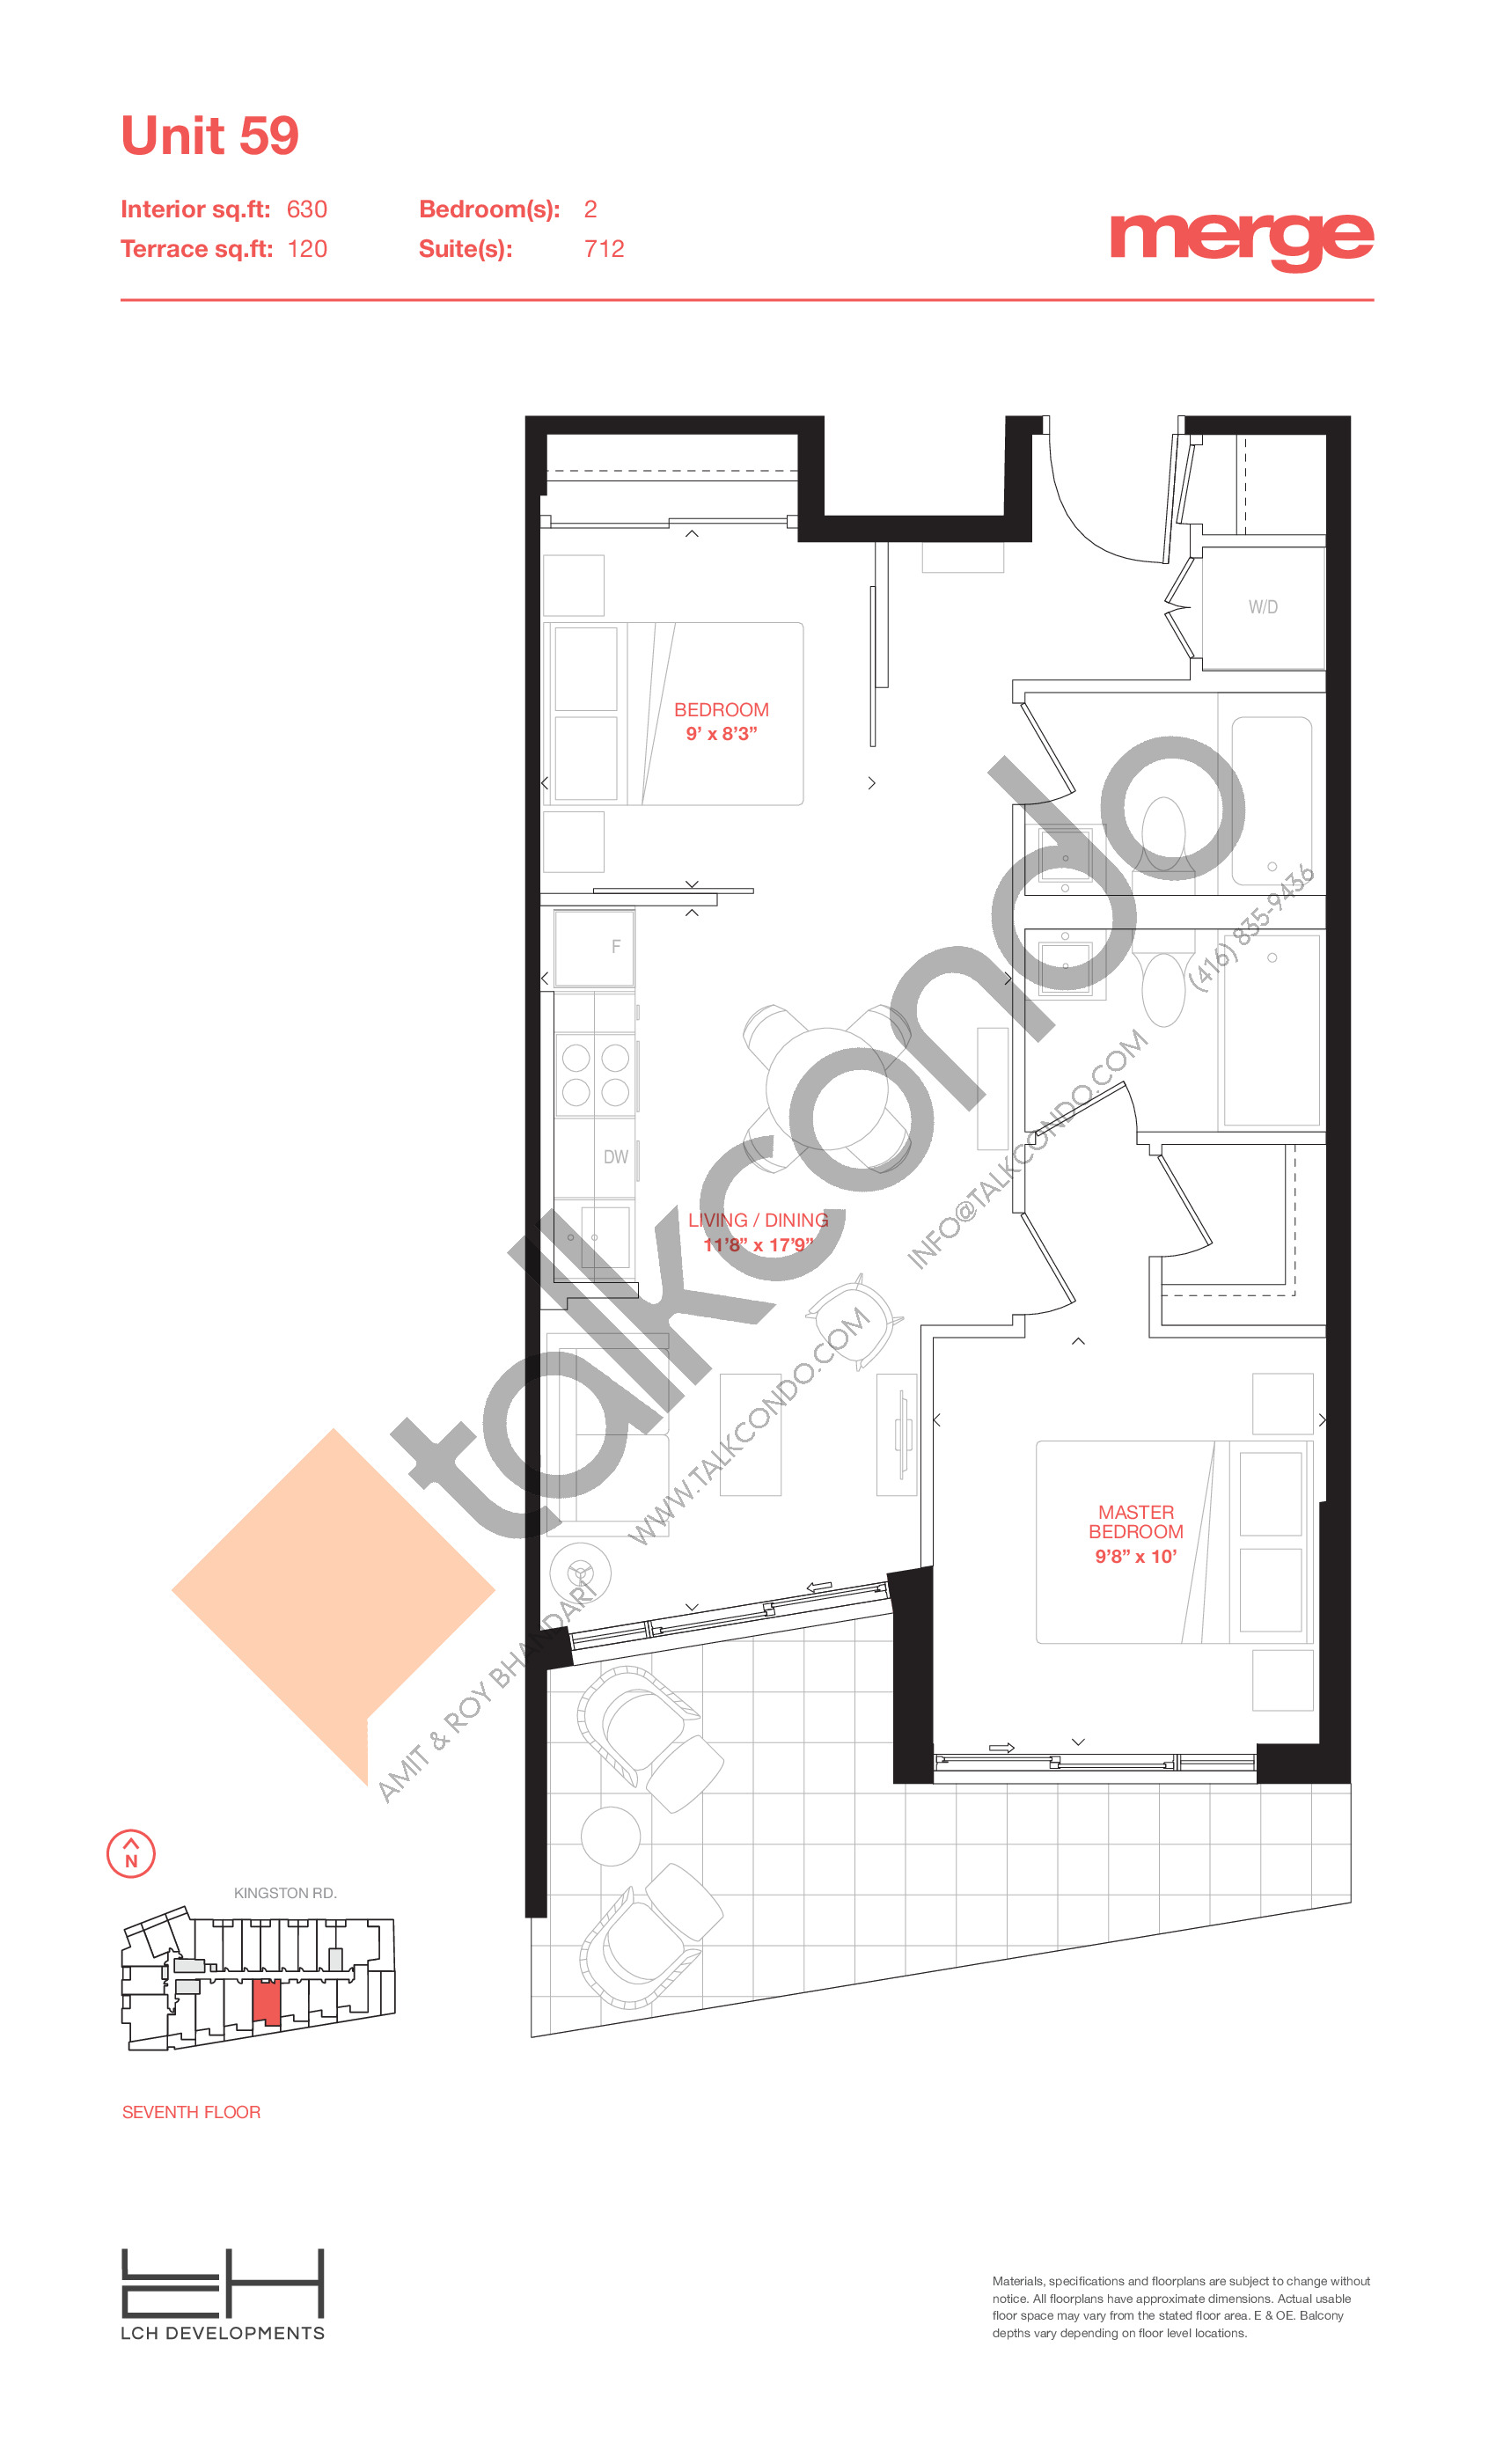 Unit 59 - Tower Floor Plan at Merge Condos - 630 sq.ft